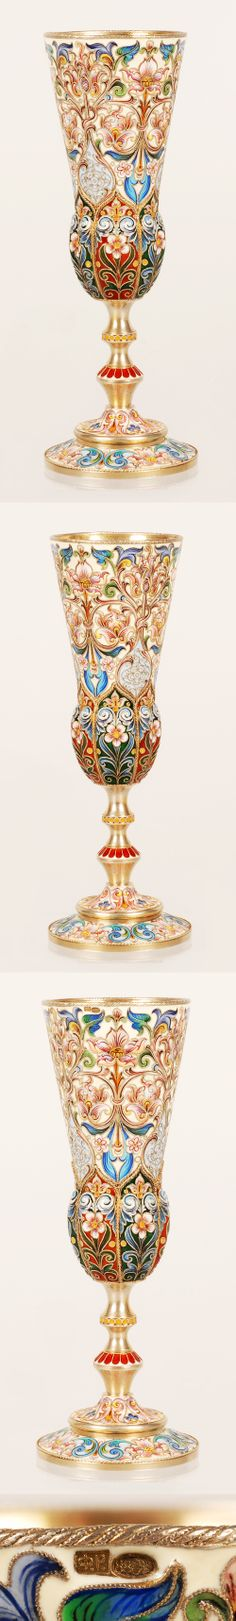 RUSSIAN__Faberge gilded silver and shaded cloisonne enamel champagne flute, Feodor Ruckert, Moscow, circa Faberge Eier, Vases, Russian Art, Ancient Art, Art Nouveau, Oeuvre D'art, Metal Working, Glass Art, Perfume Bottles